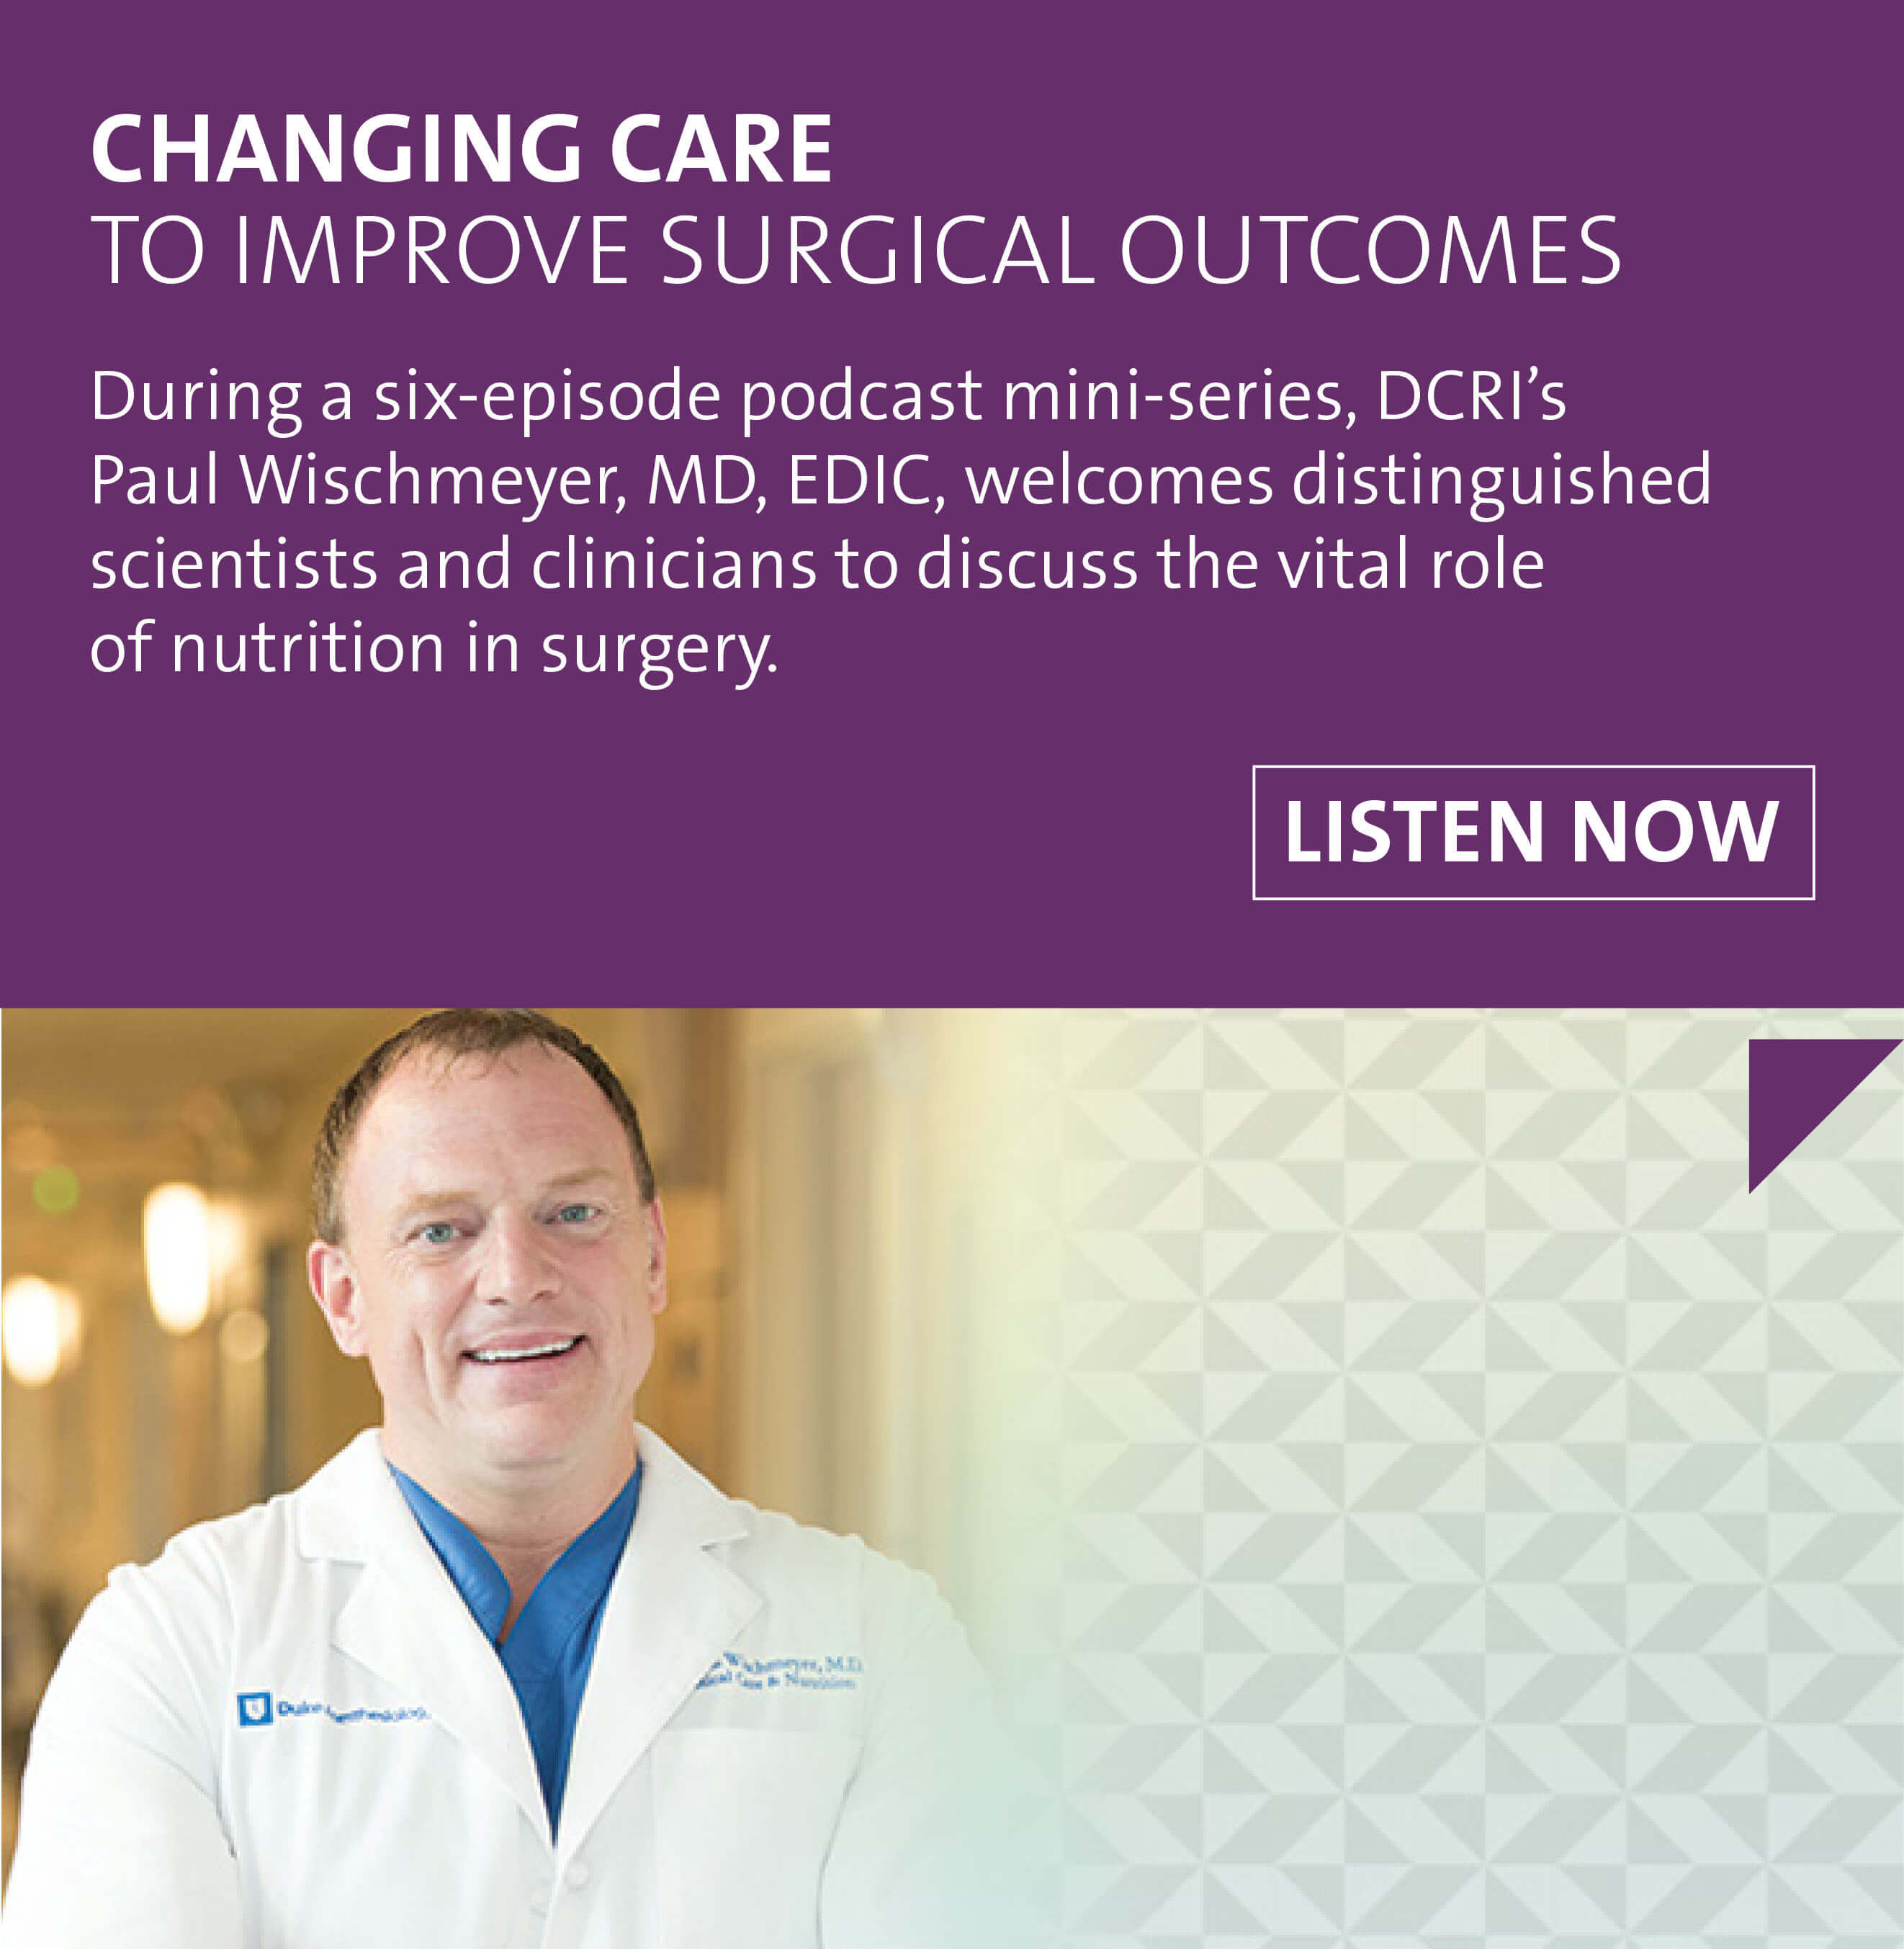 DCRI is changing care to improve surgical outcomes. Listen to the six-episode podcast mini-series, as Paul Wischmeyer, MD, EDIC, welcomes distinguished scientists and clinicians to discuss the vital role of nutrition in surgery.